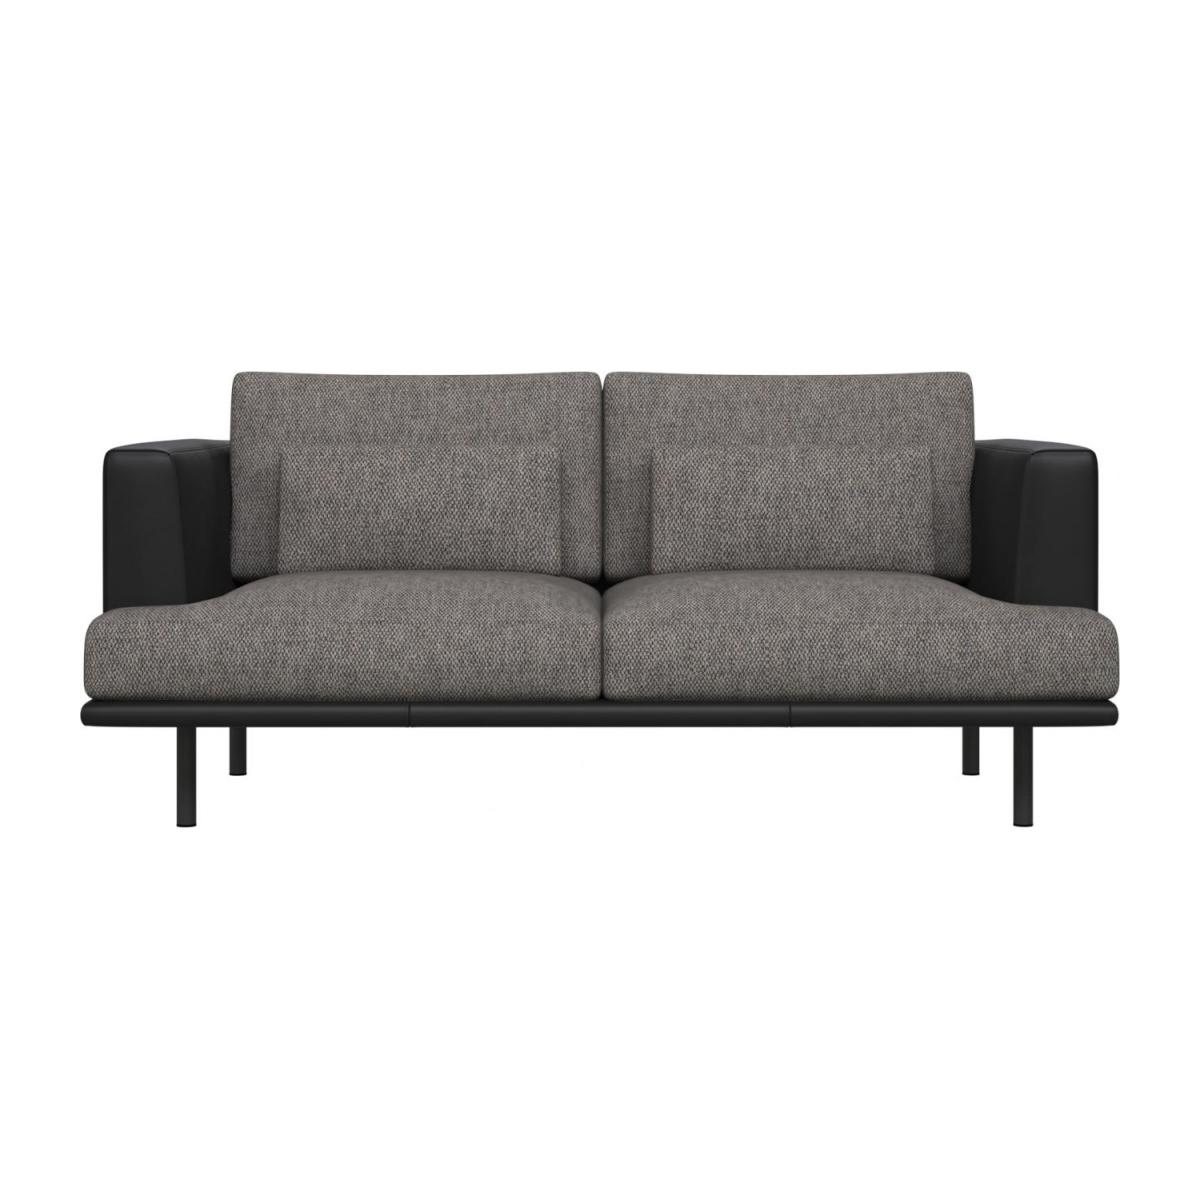 2 seater sofa in Bellagio fabric, night black with base and armrests in black leather n°3